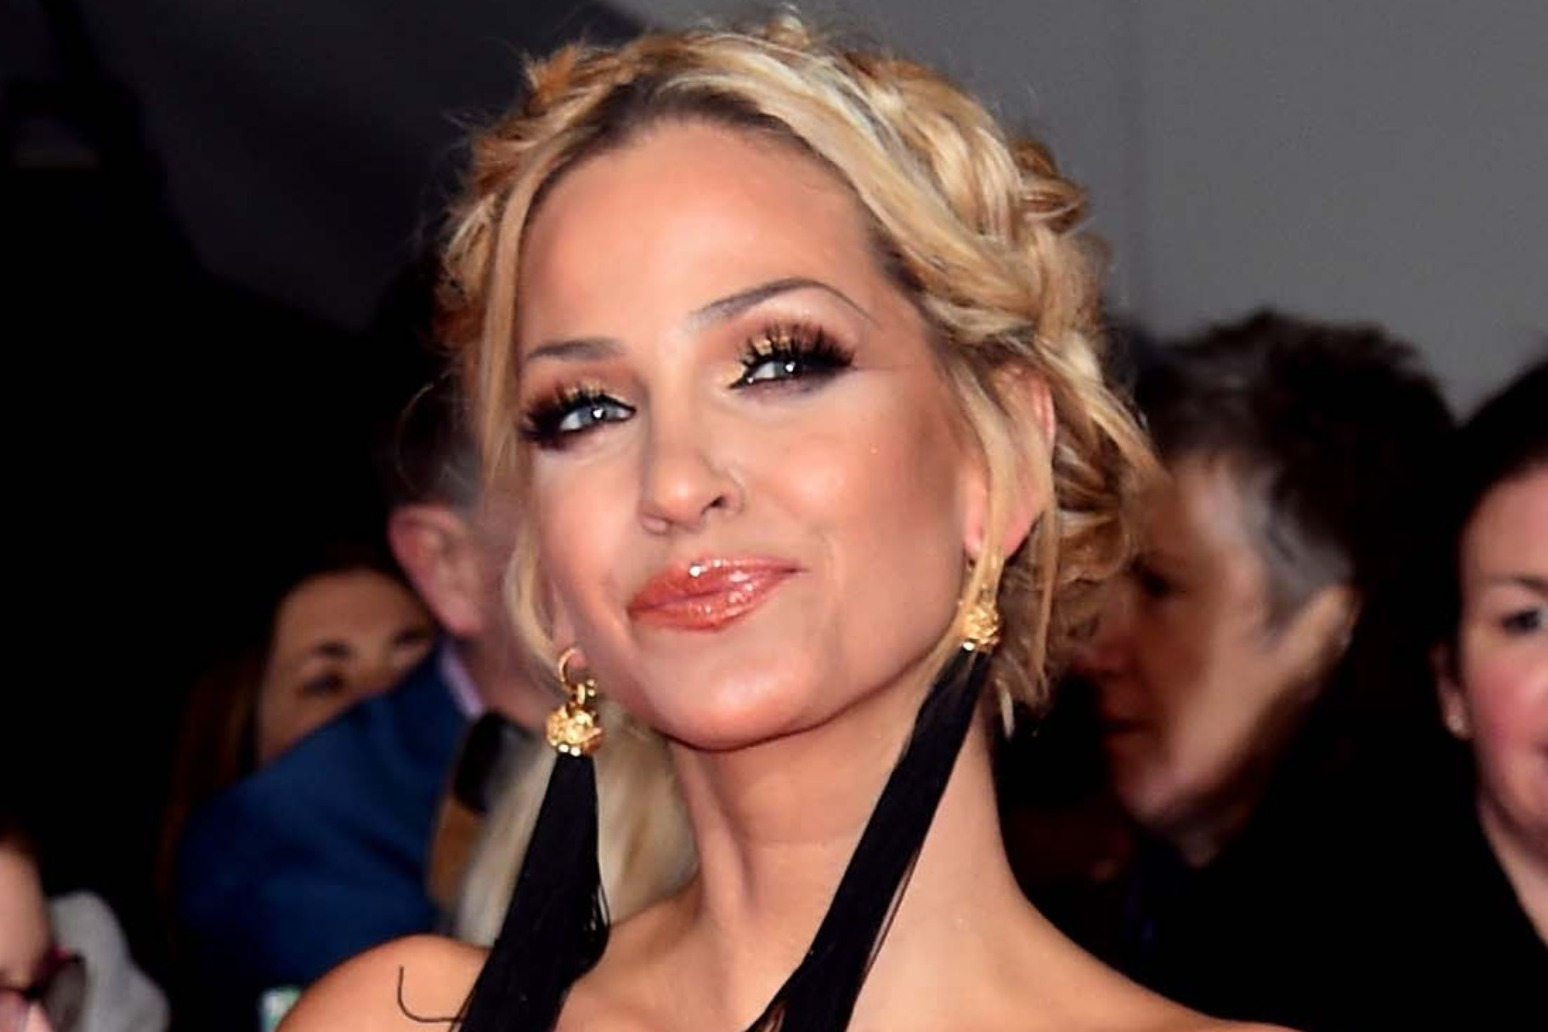 Sarah Harding diagnosed with advanced breast cancer.